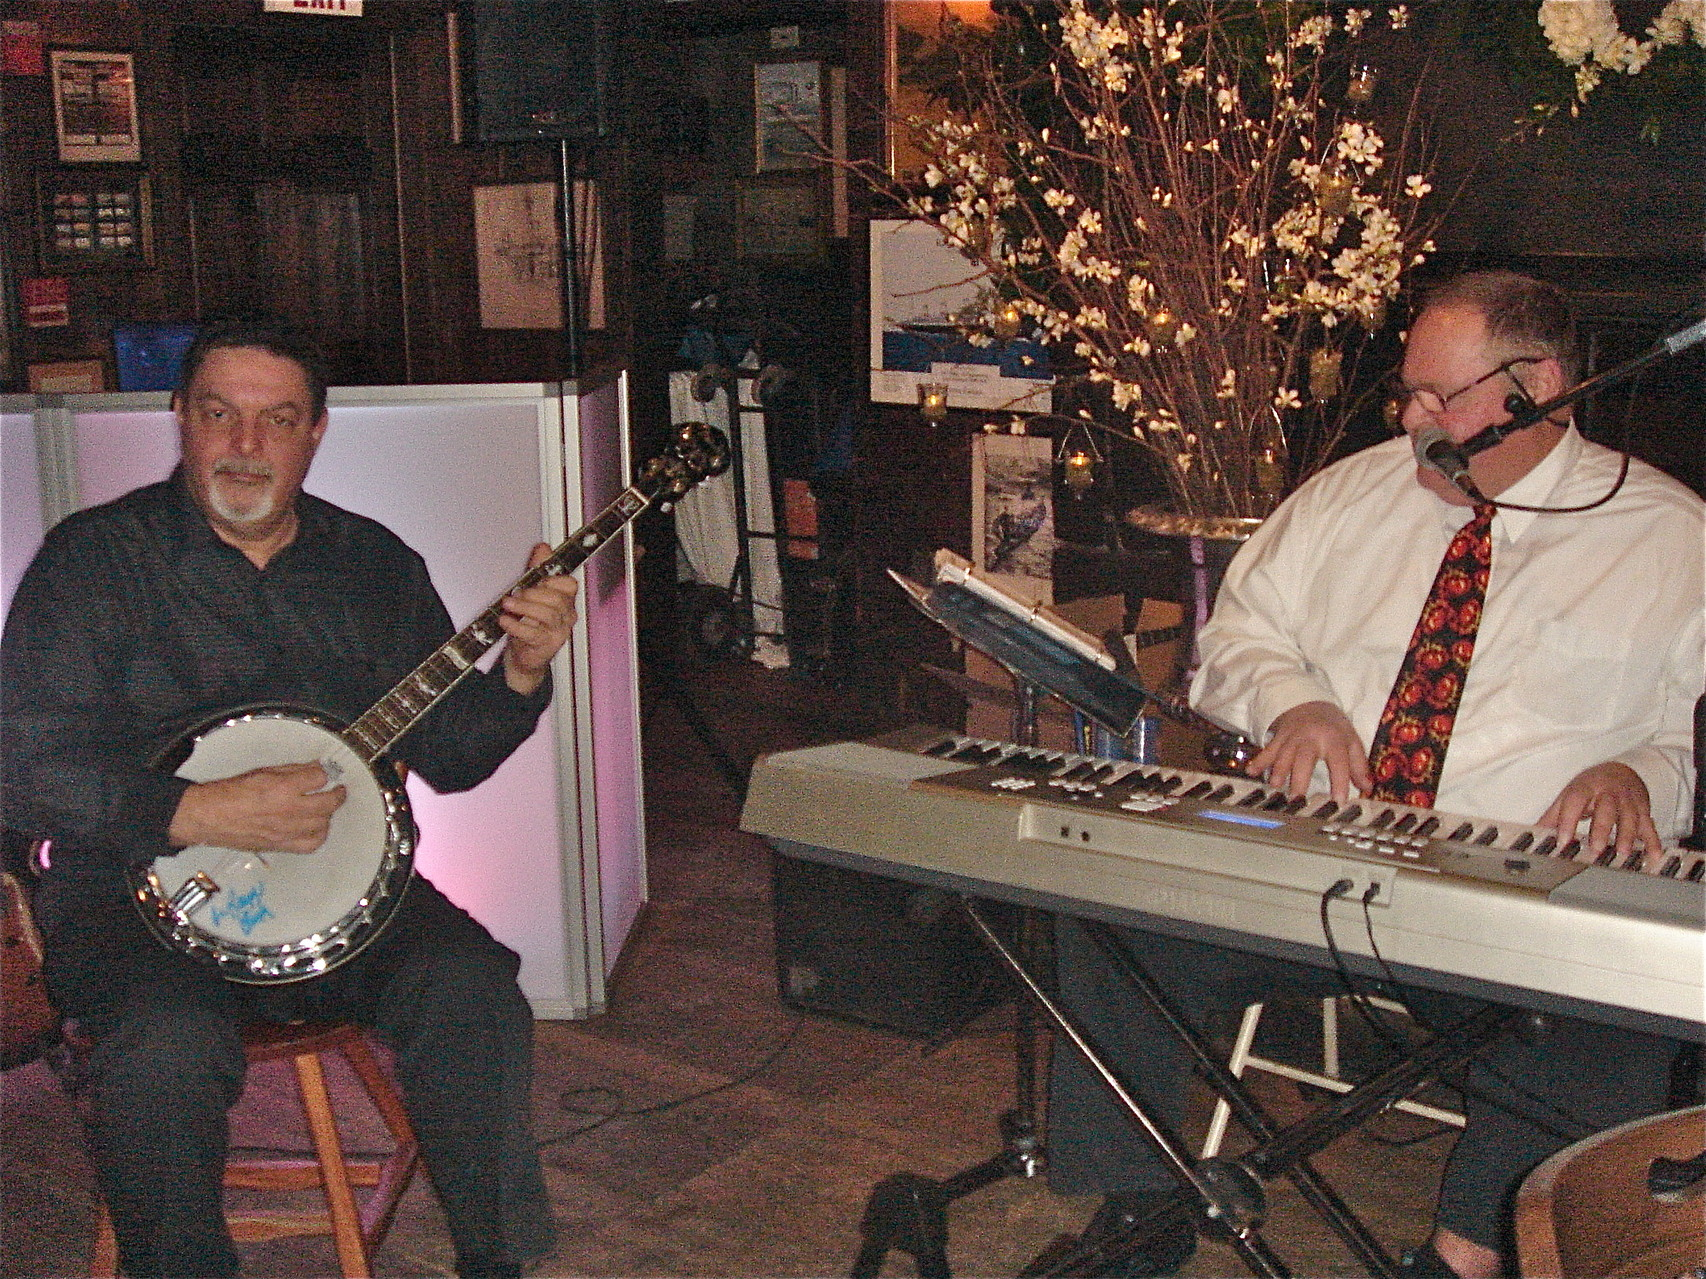 The banjo player led the festivities during the cocktail hour